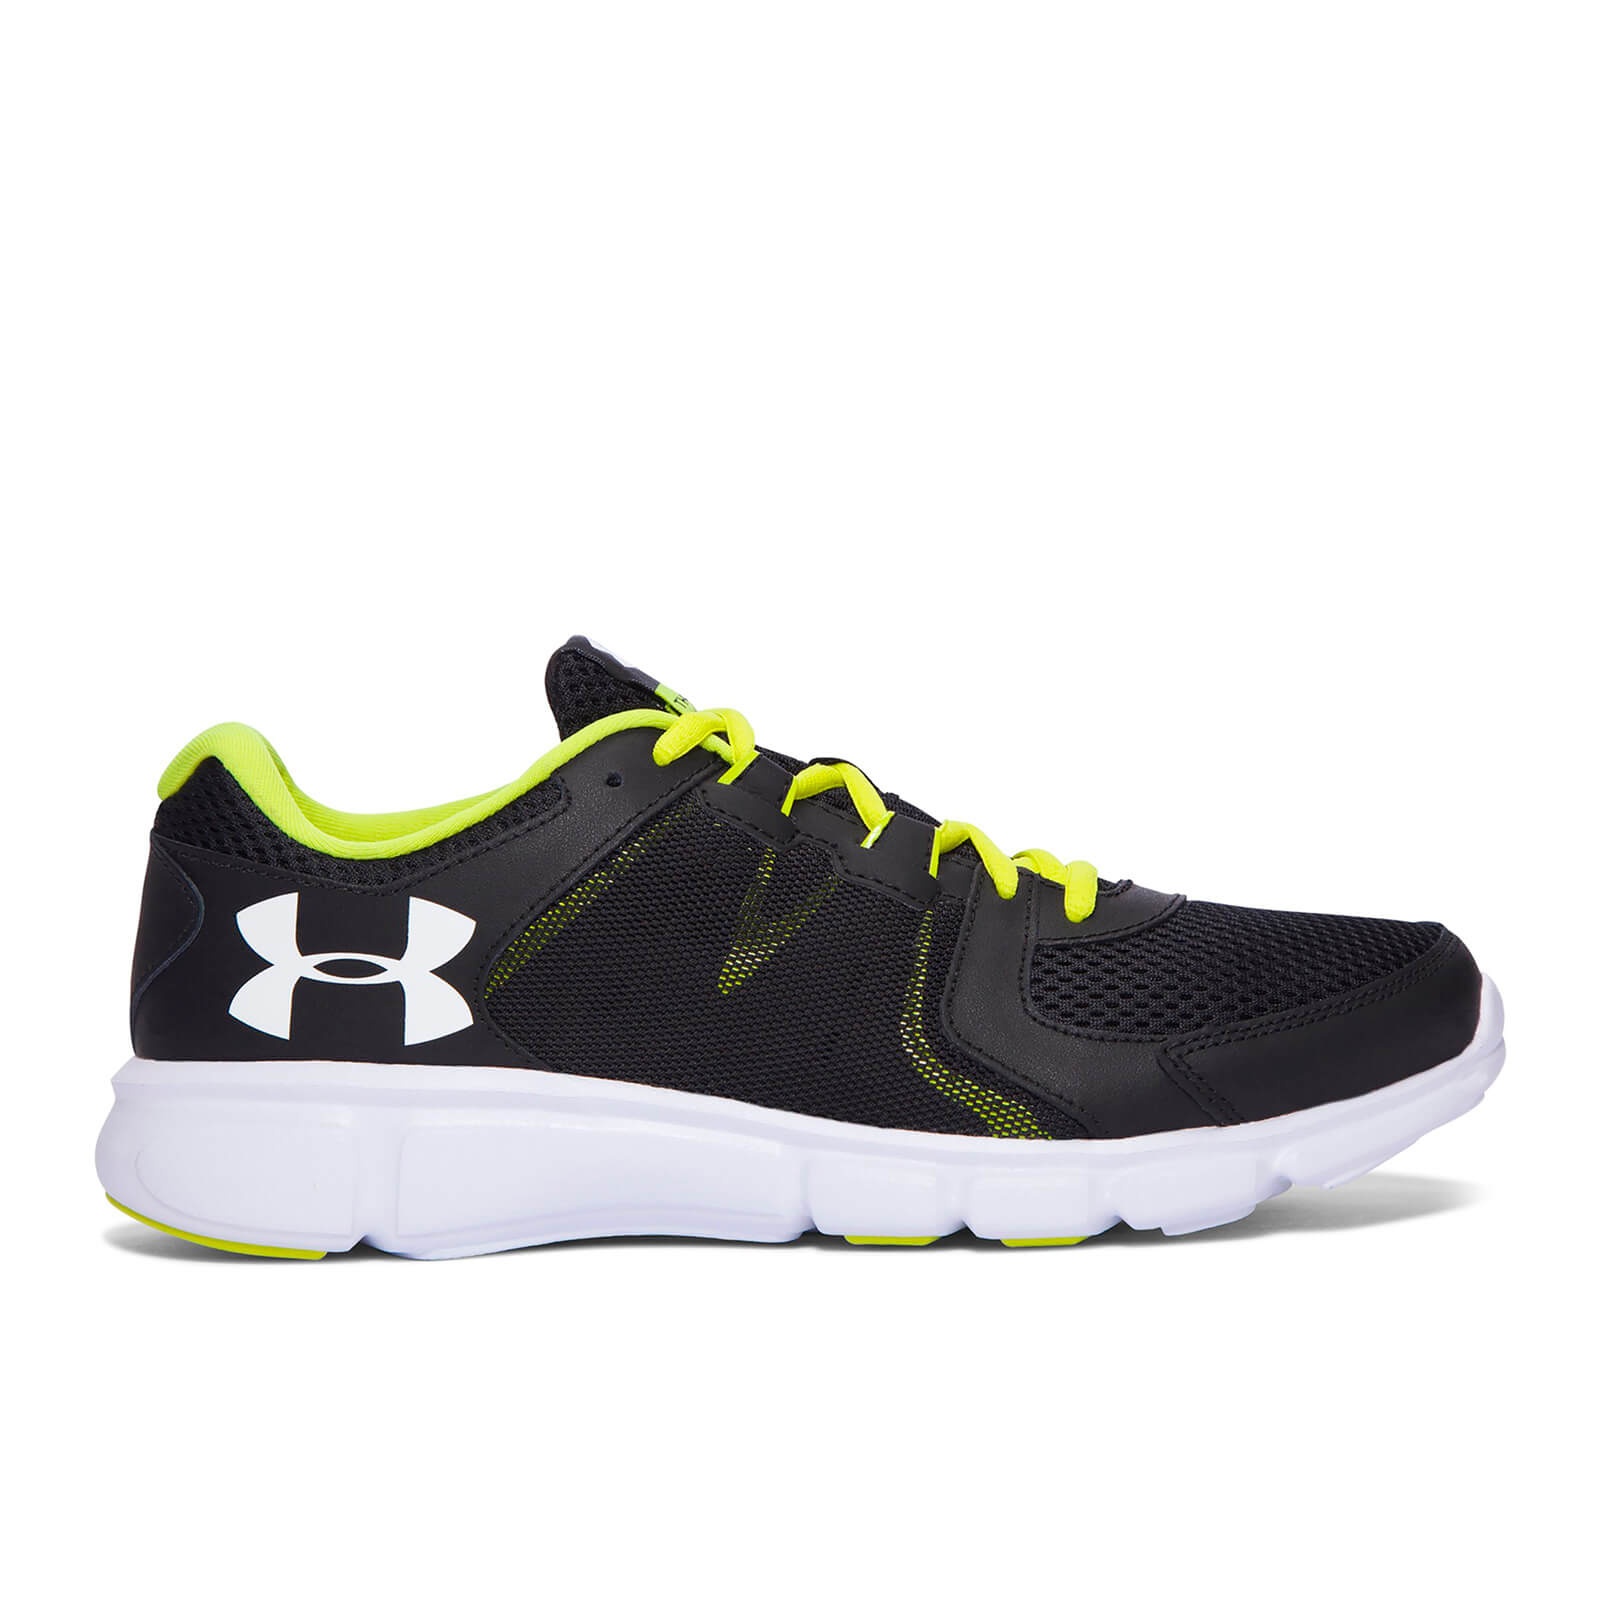 huge discount 90ebd b1f2f Under Armour Men's Thrill 2 Running Shoes - Black/Smash Yellow